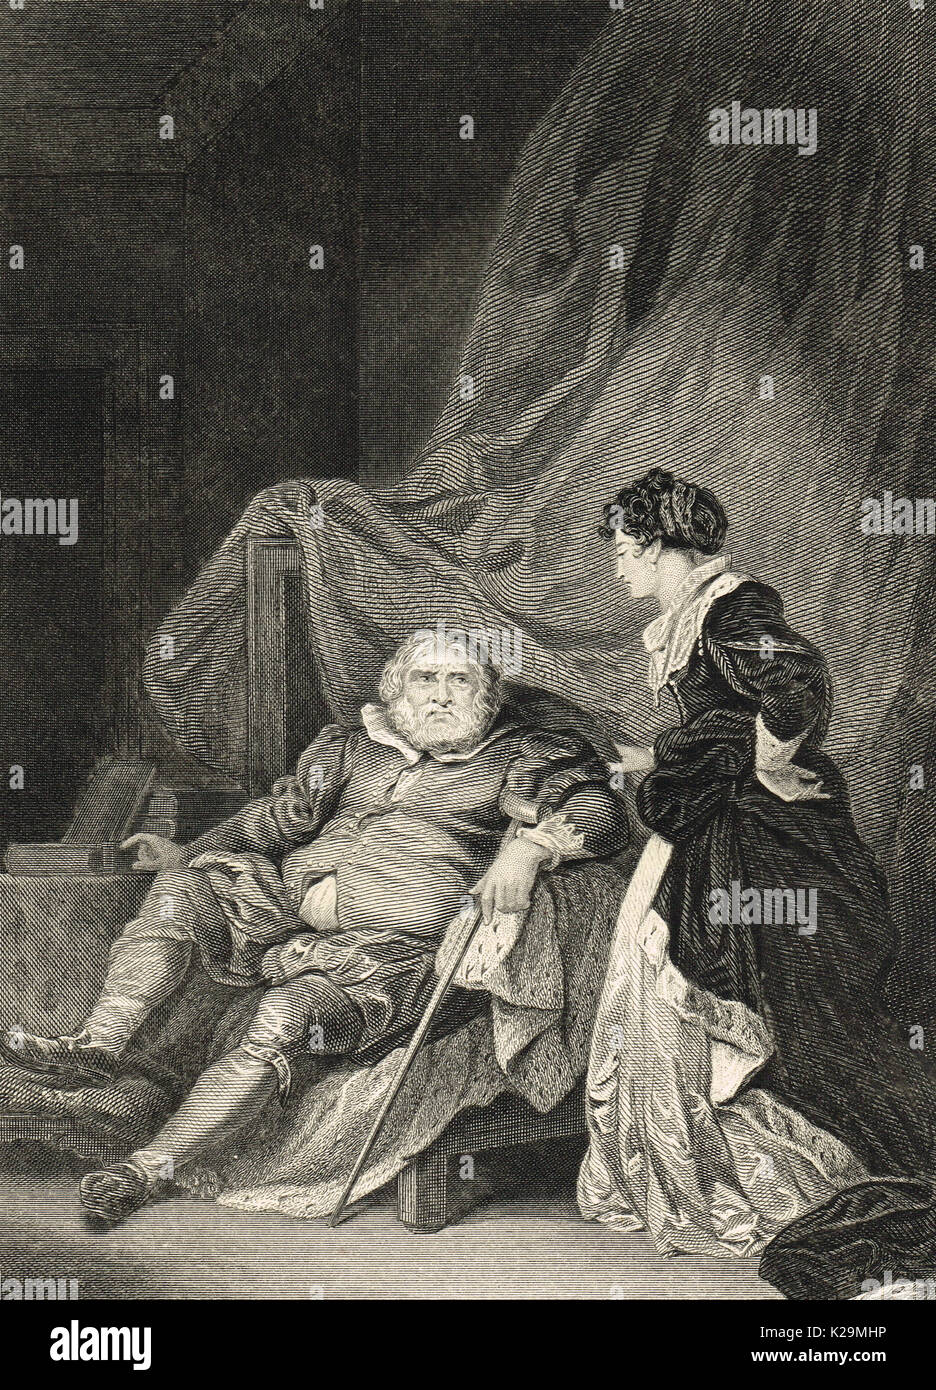 Henry VIII seated with Catherine Parr - Stock Image